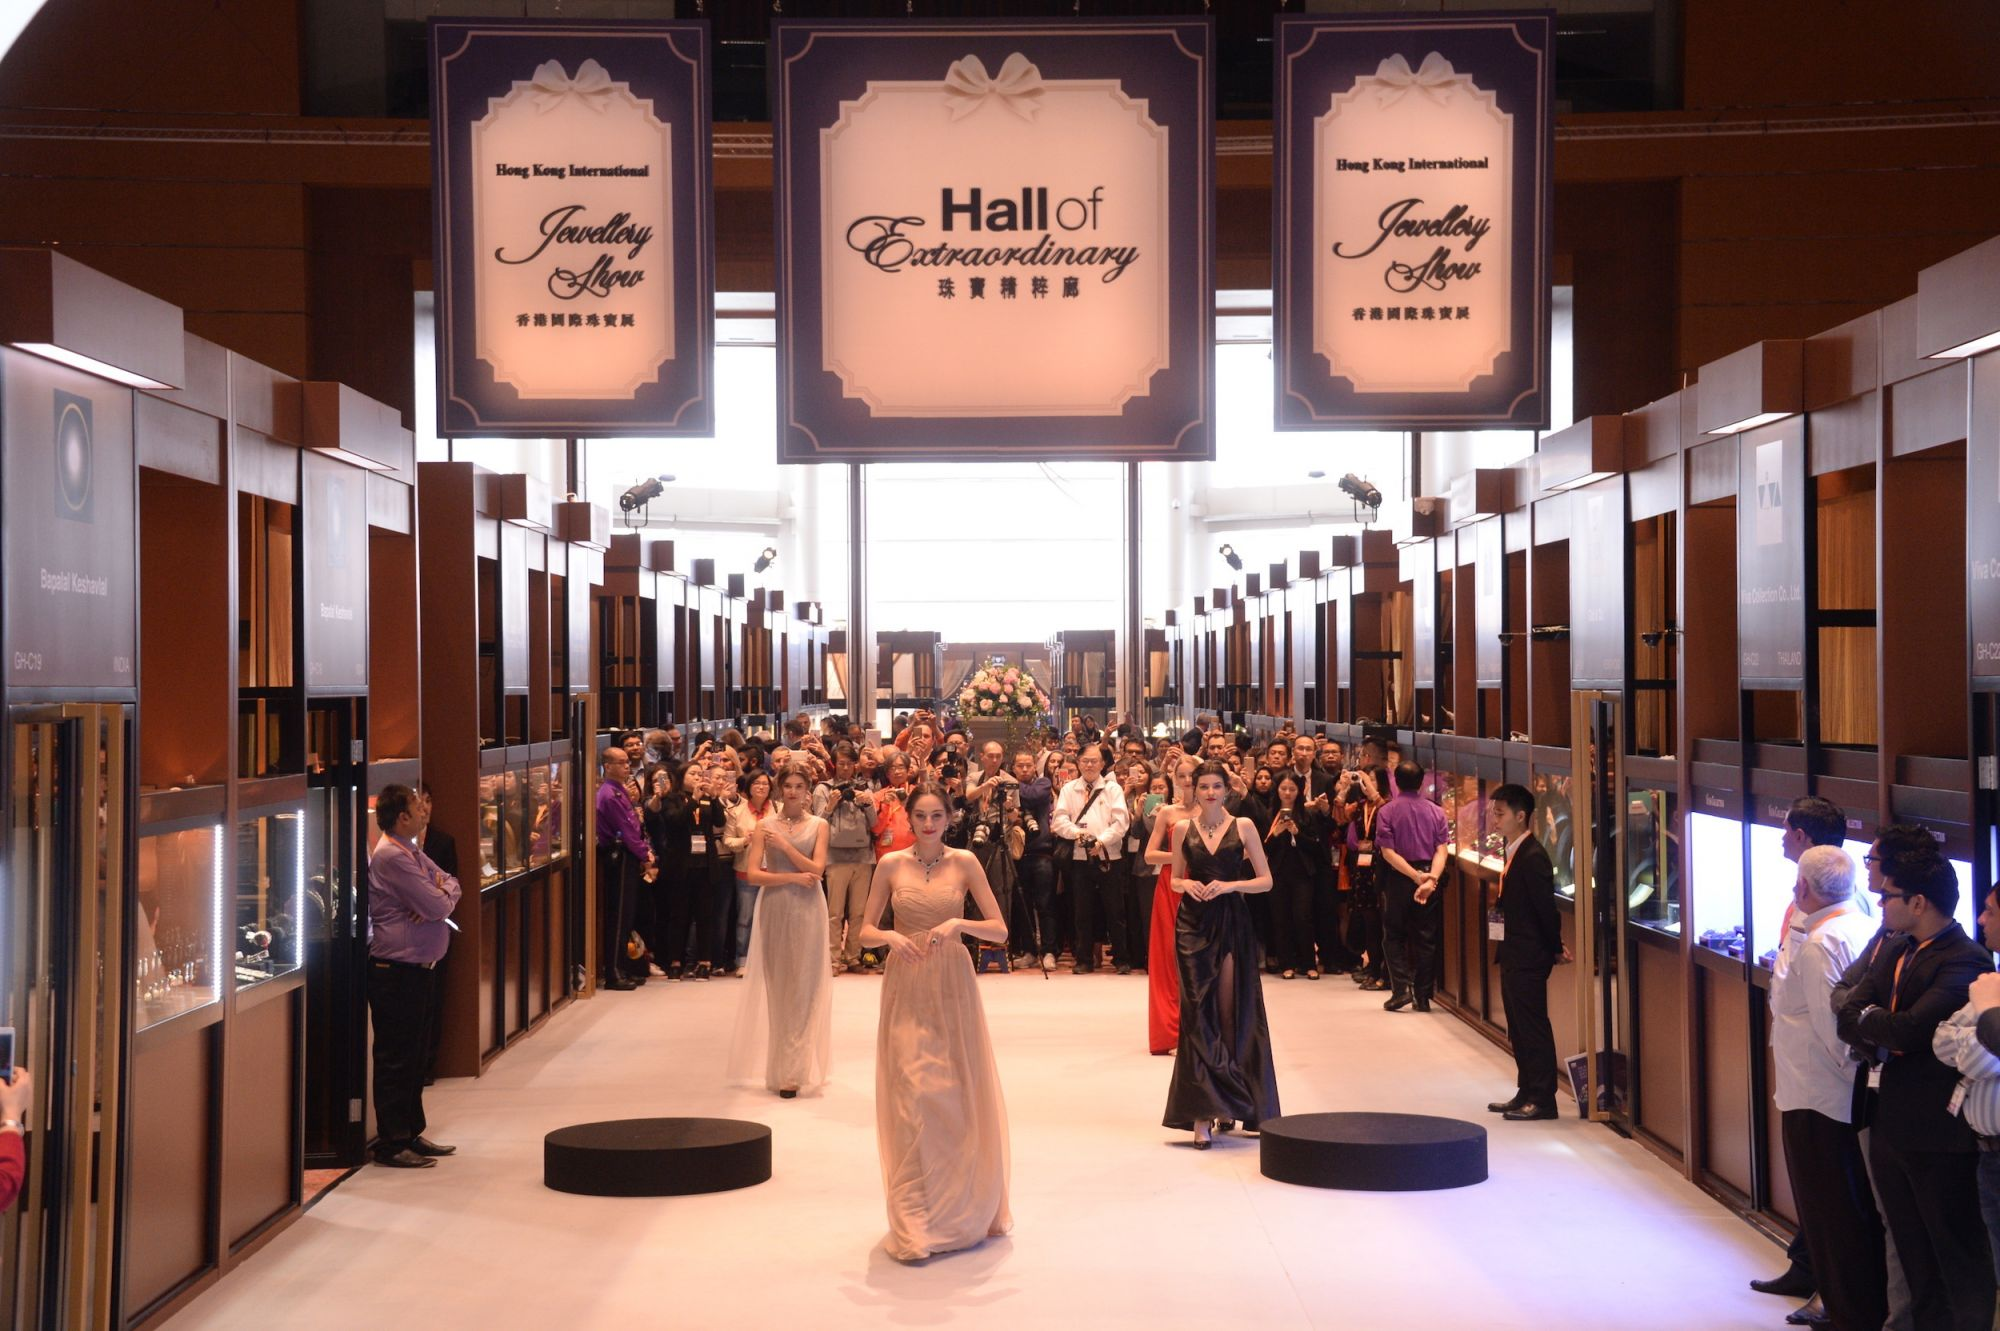 Hktdc Presents Two Jewellery Shows In Hong Kong This Spring